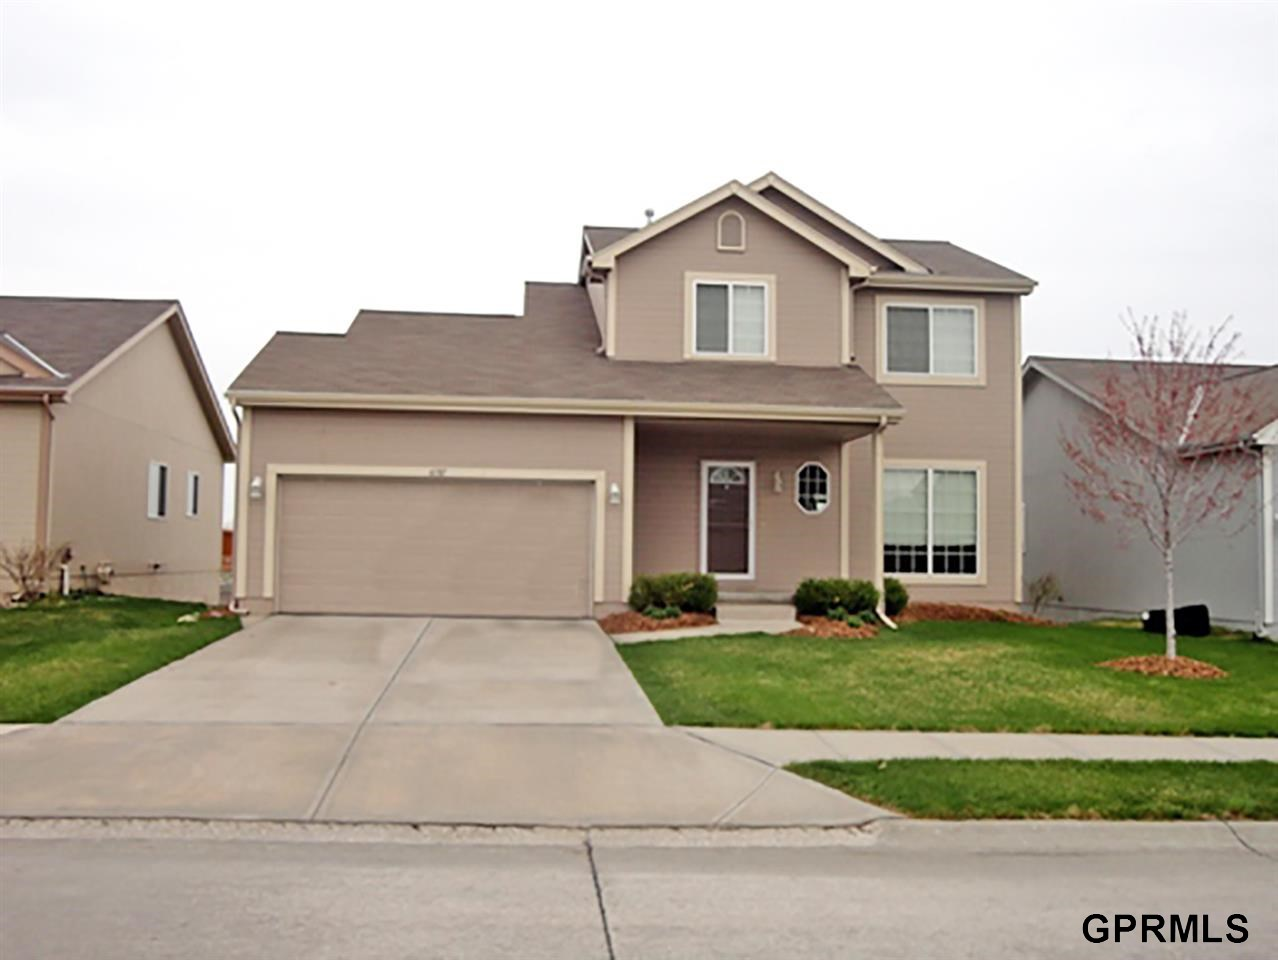 Rental Homes for Rent, ListingId:31222972, location: 6101 S 191st Terrace Omaha 68135